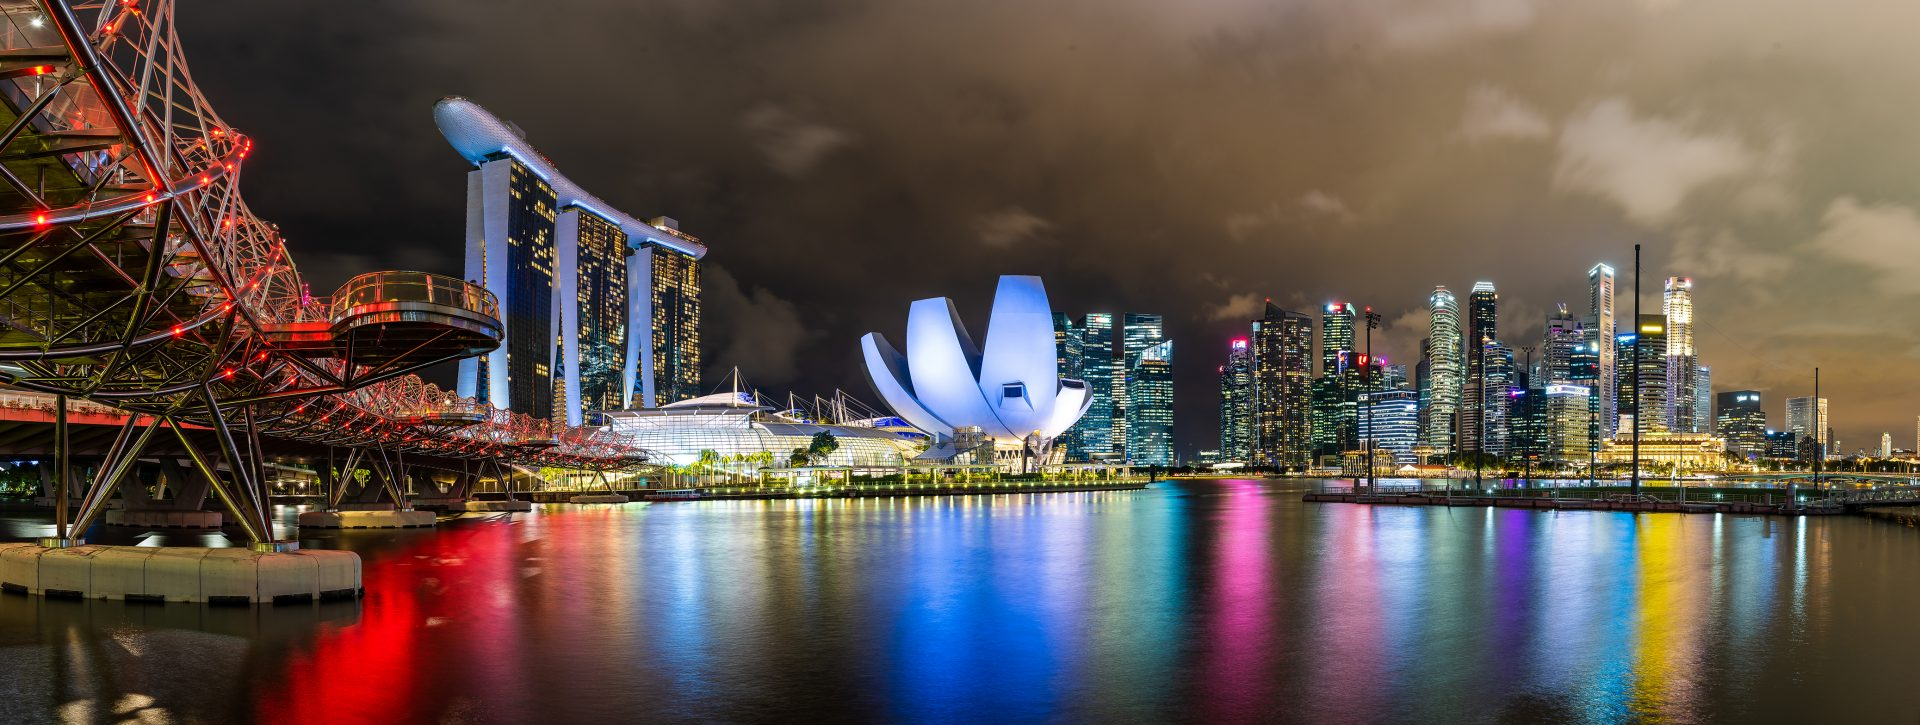 panoramic of Singapore Marina Bay Sands at night with colour lights